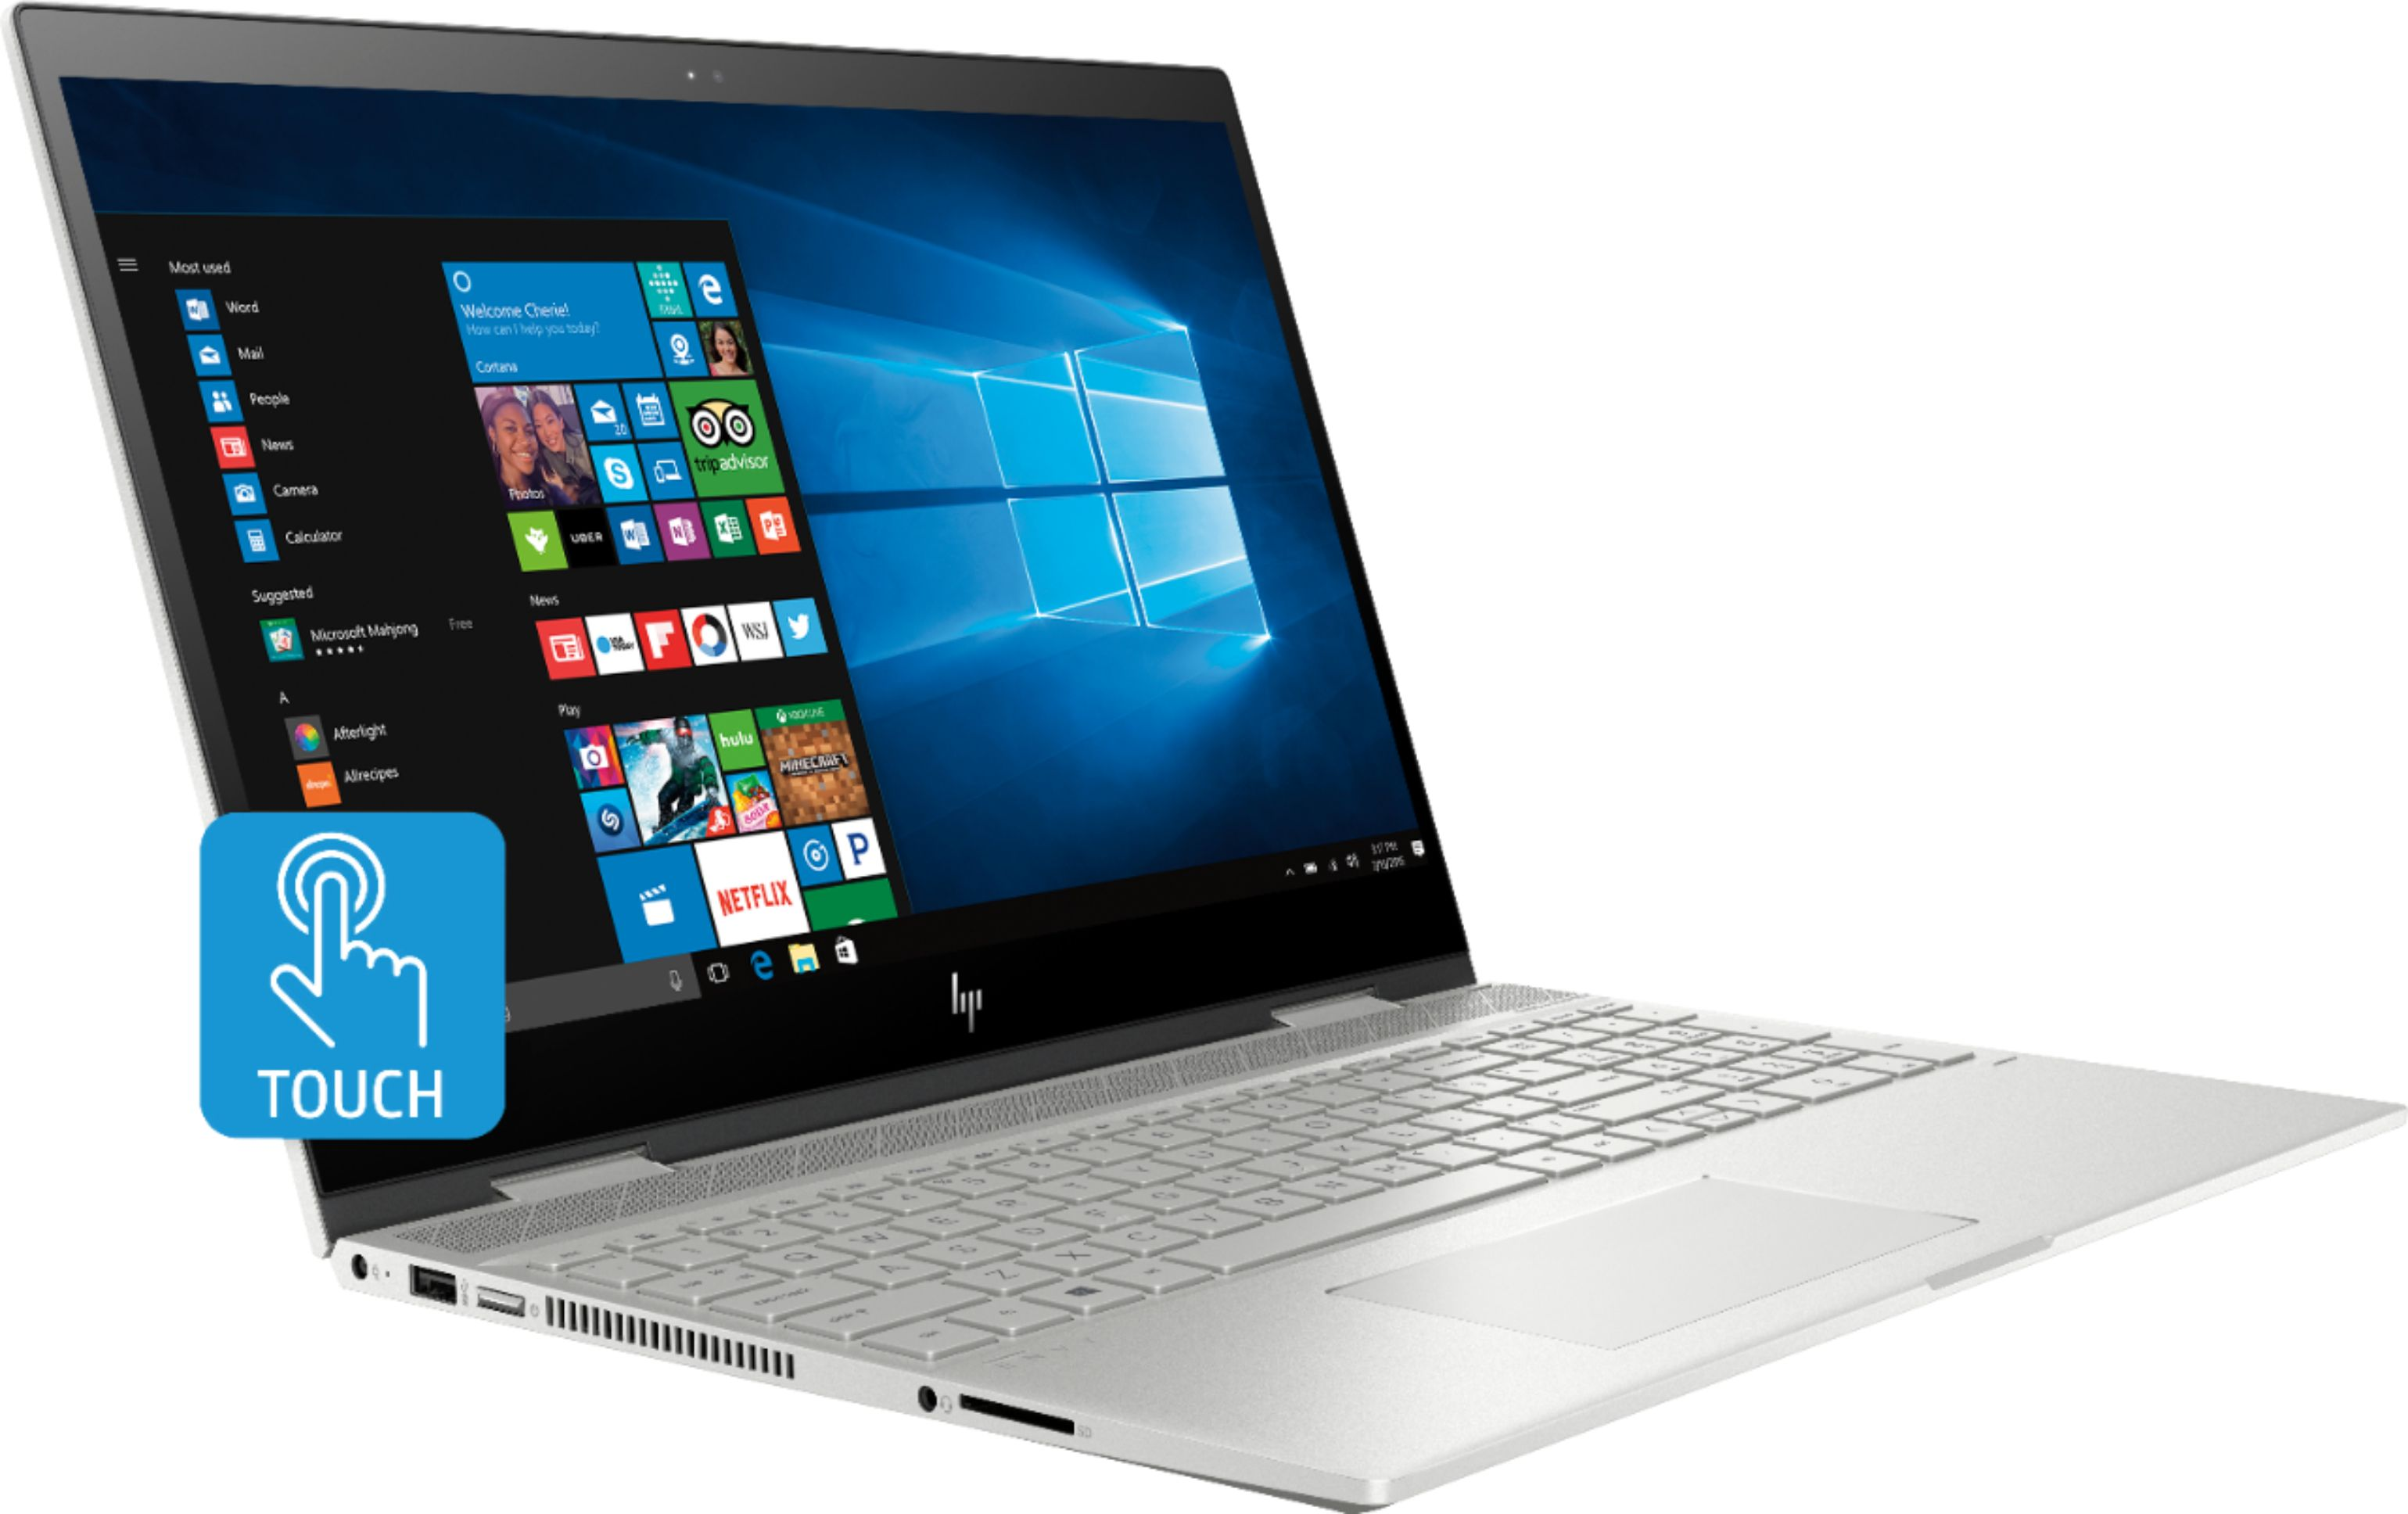 """Angle Zoom. Geek Squad Certified Refurbished ENVY x360 2-in-1 15.6"""" Touch-Screen Laptop - Intel Core i7 - 12GB Memory - 256GB SSD - HP Finish In Natural Silver."""